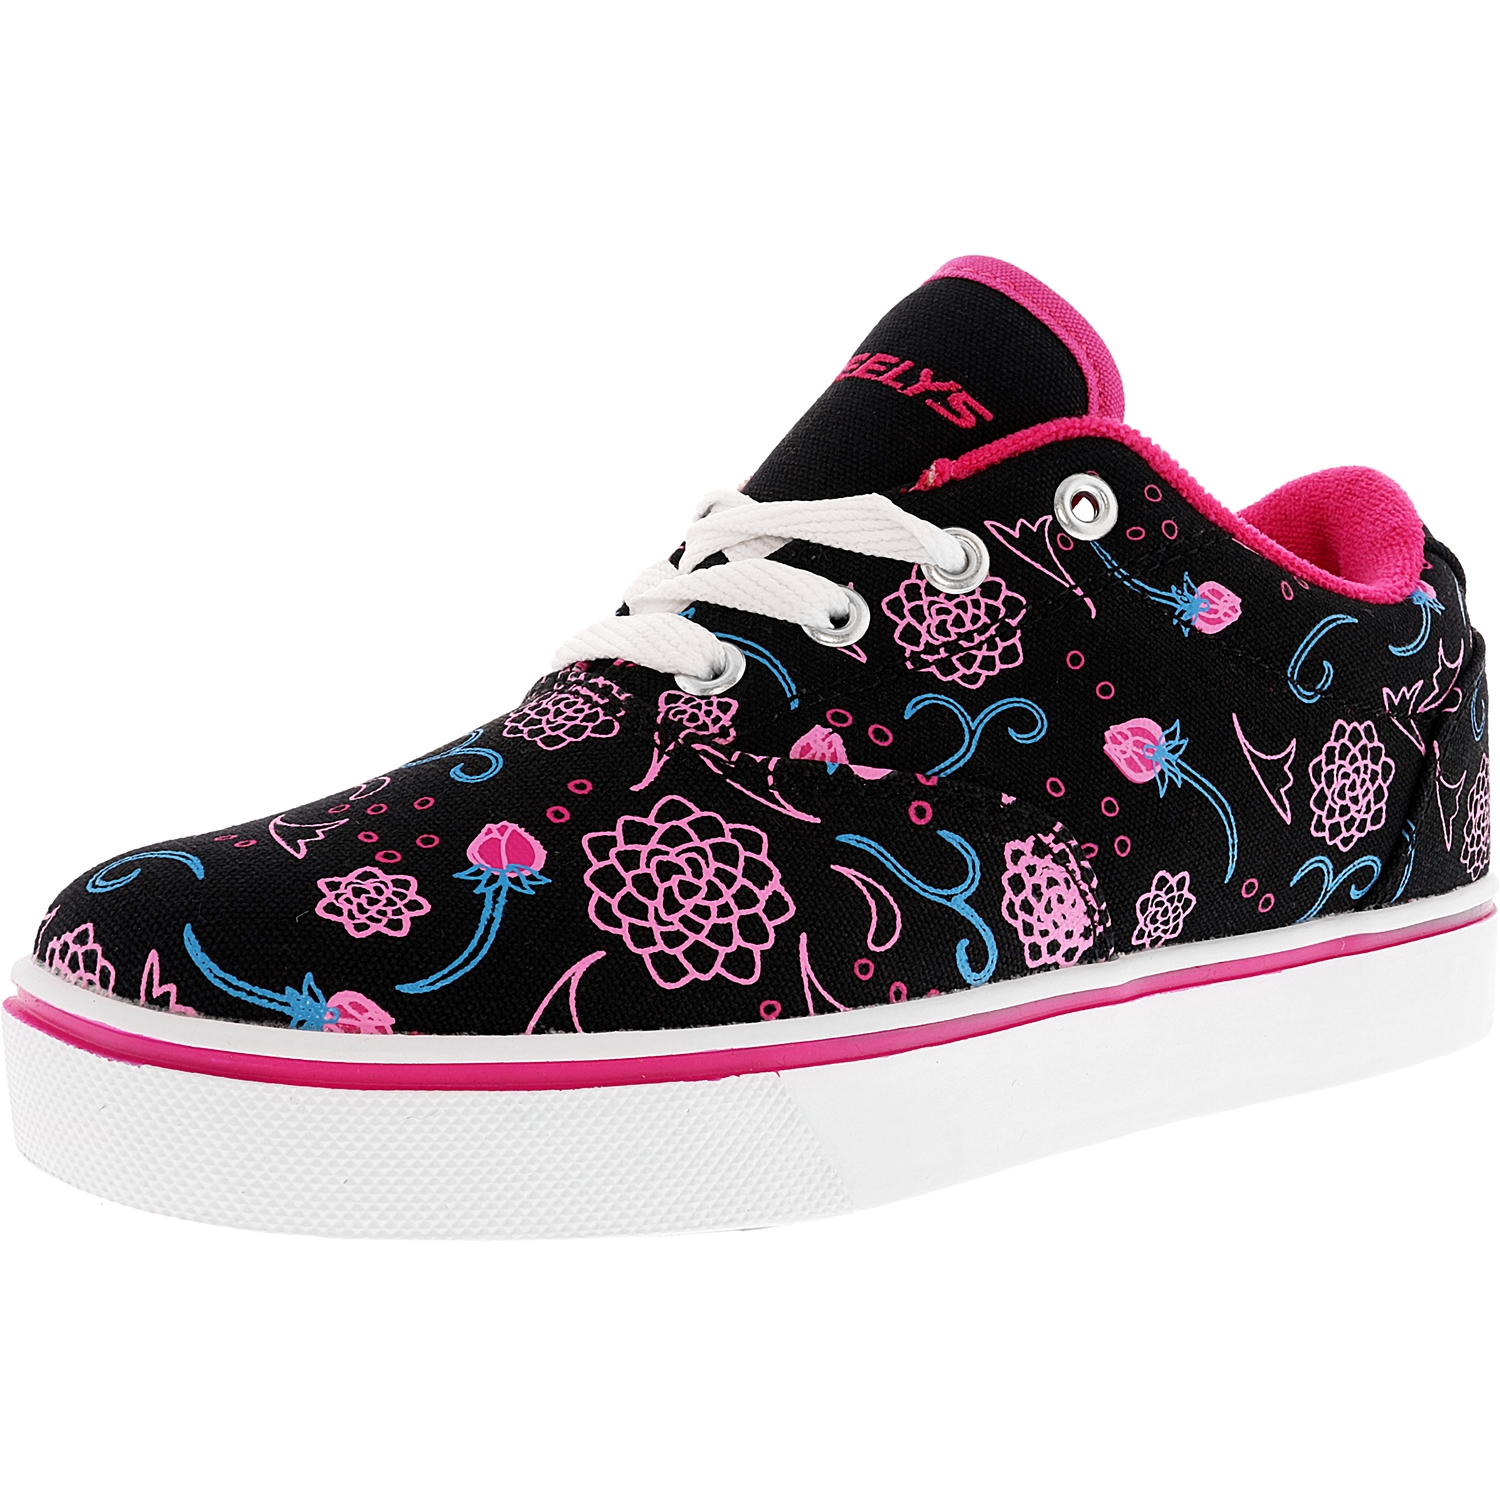 Heelys Launch Black / Hot Pink Blue Ankle-High Fashion Sn...